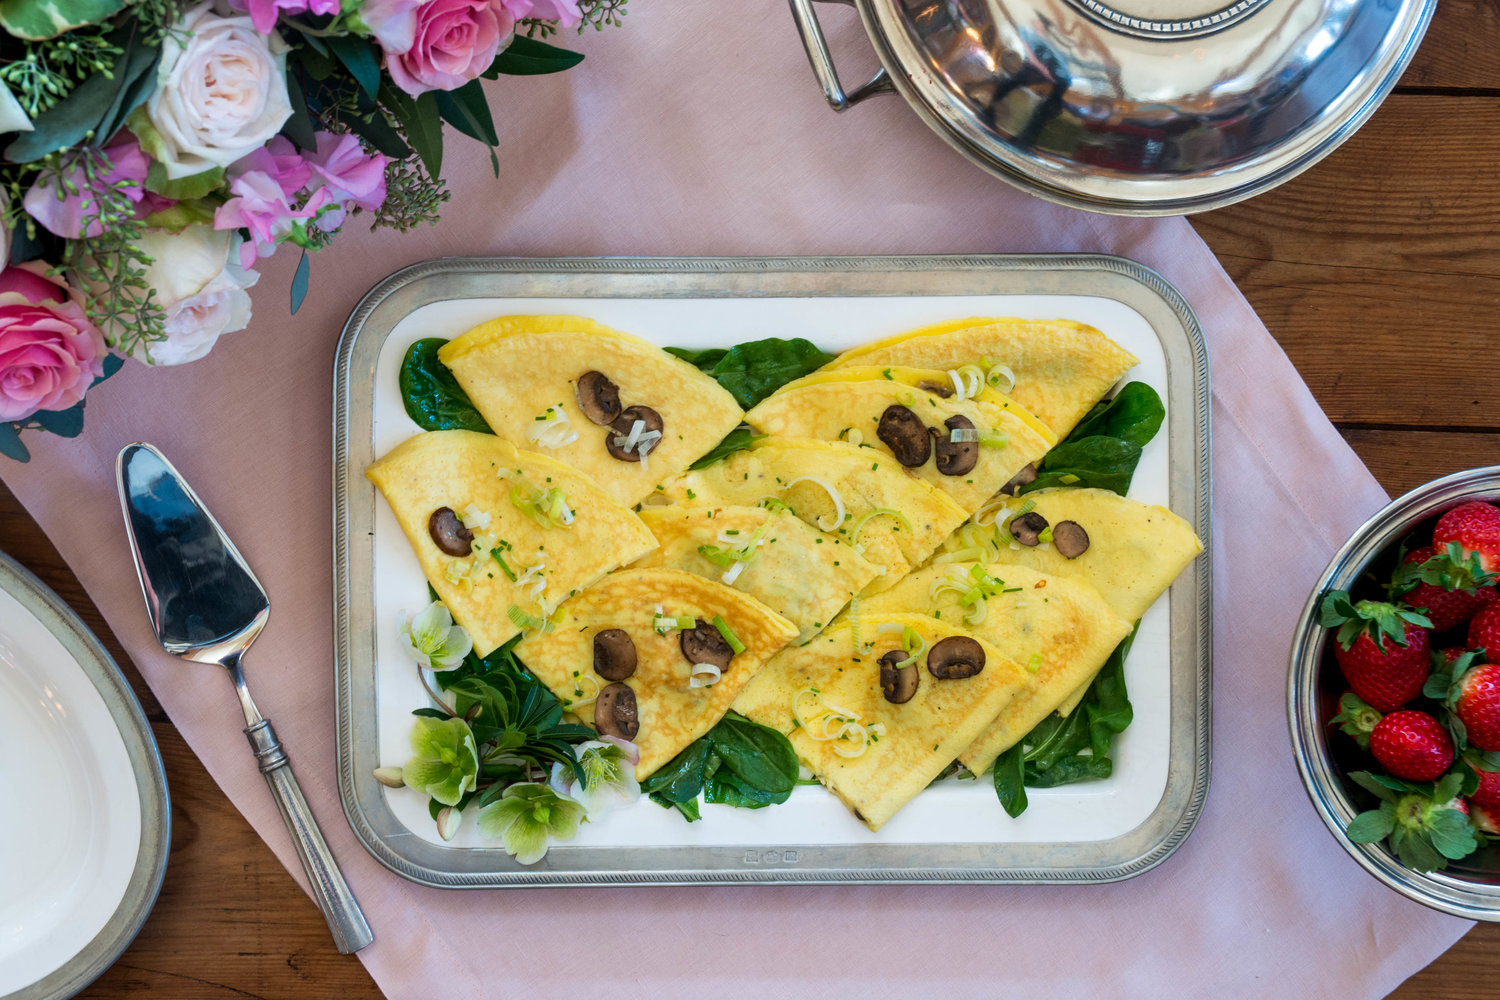 Julia's Omelette - Often a test of culinary skill, many home chefs relegate the attention to detail needed to perfect the omelette to Sunday brunches in fine hotels. This Brazilian recipe, however, could be called the